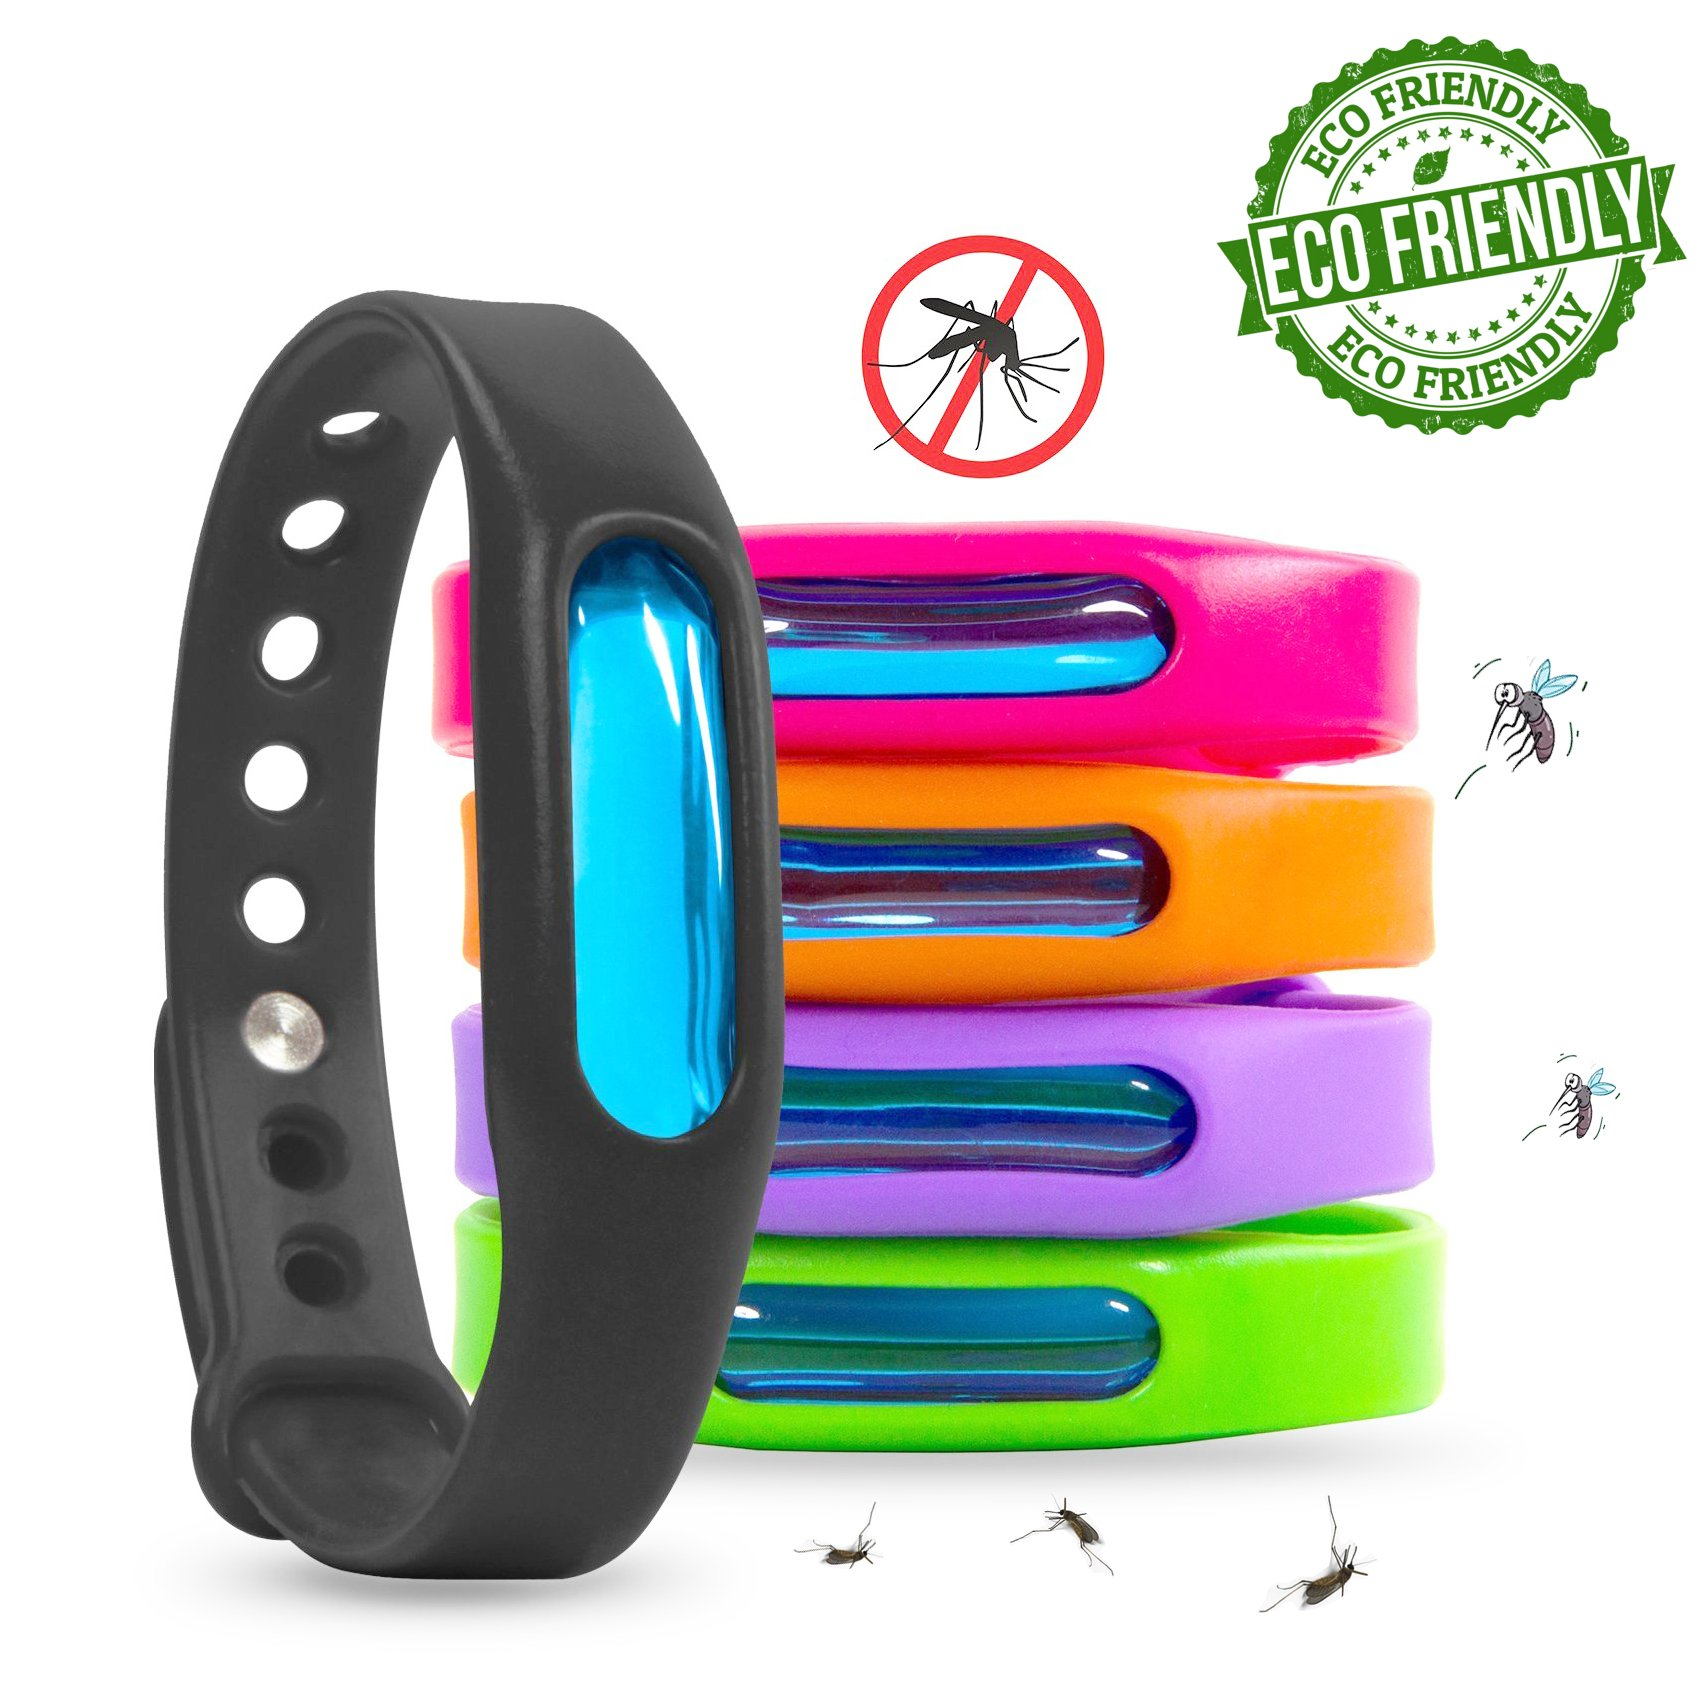 Mosquito Repellent Bracelet For Kids, Adults & Pets Bug Repellent